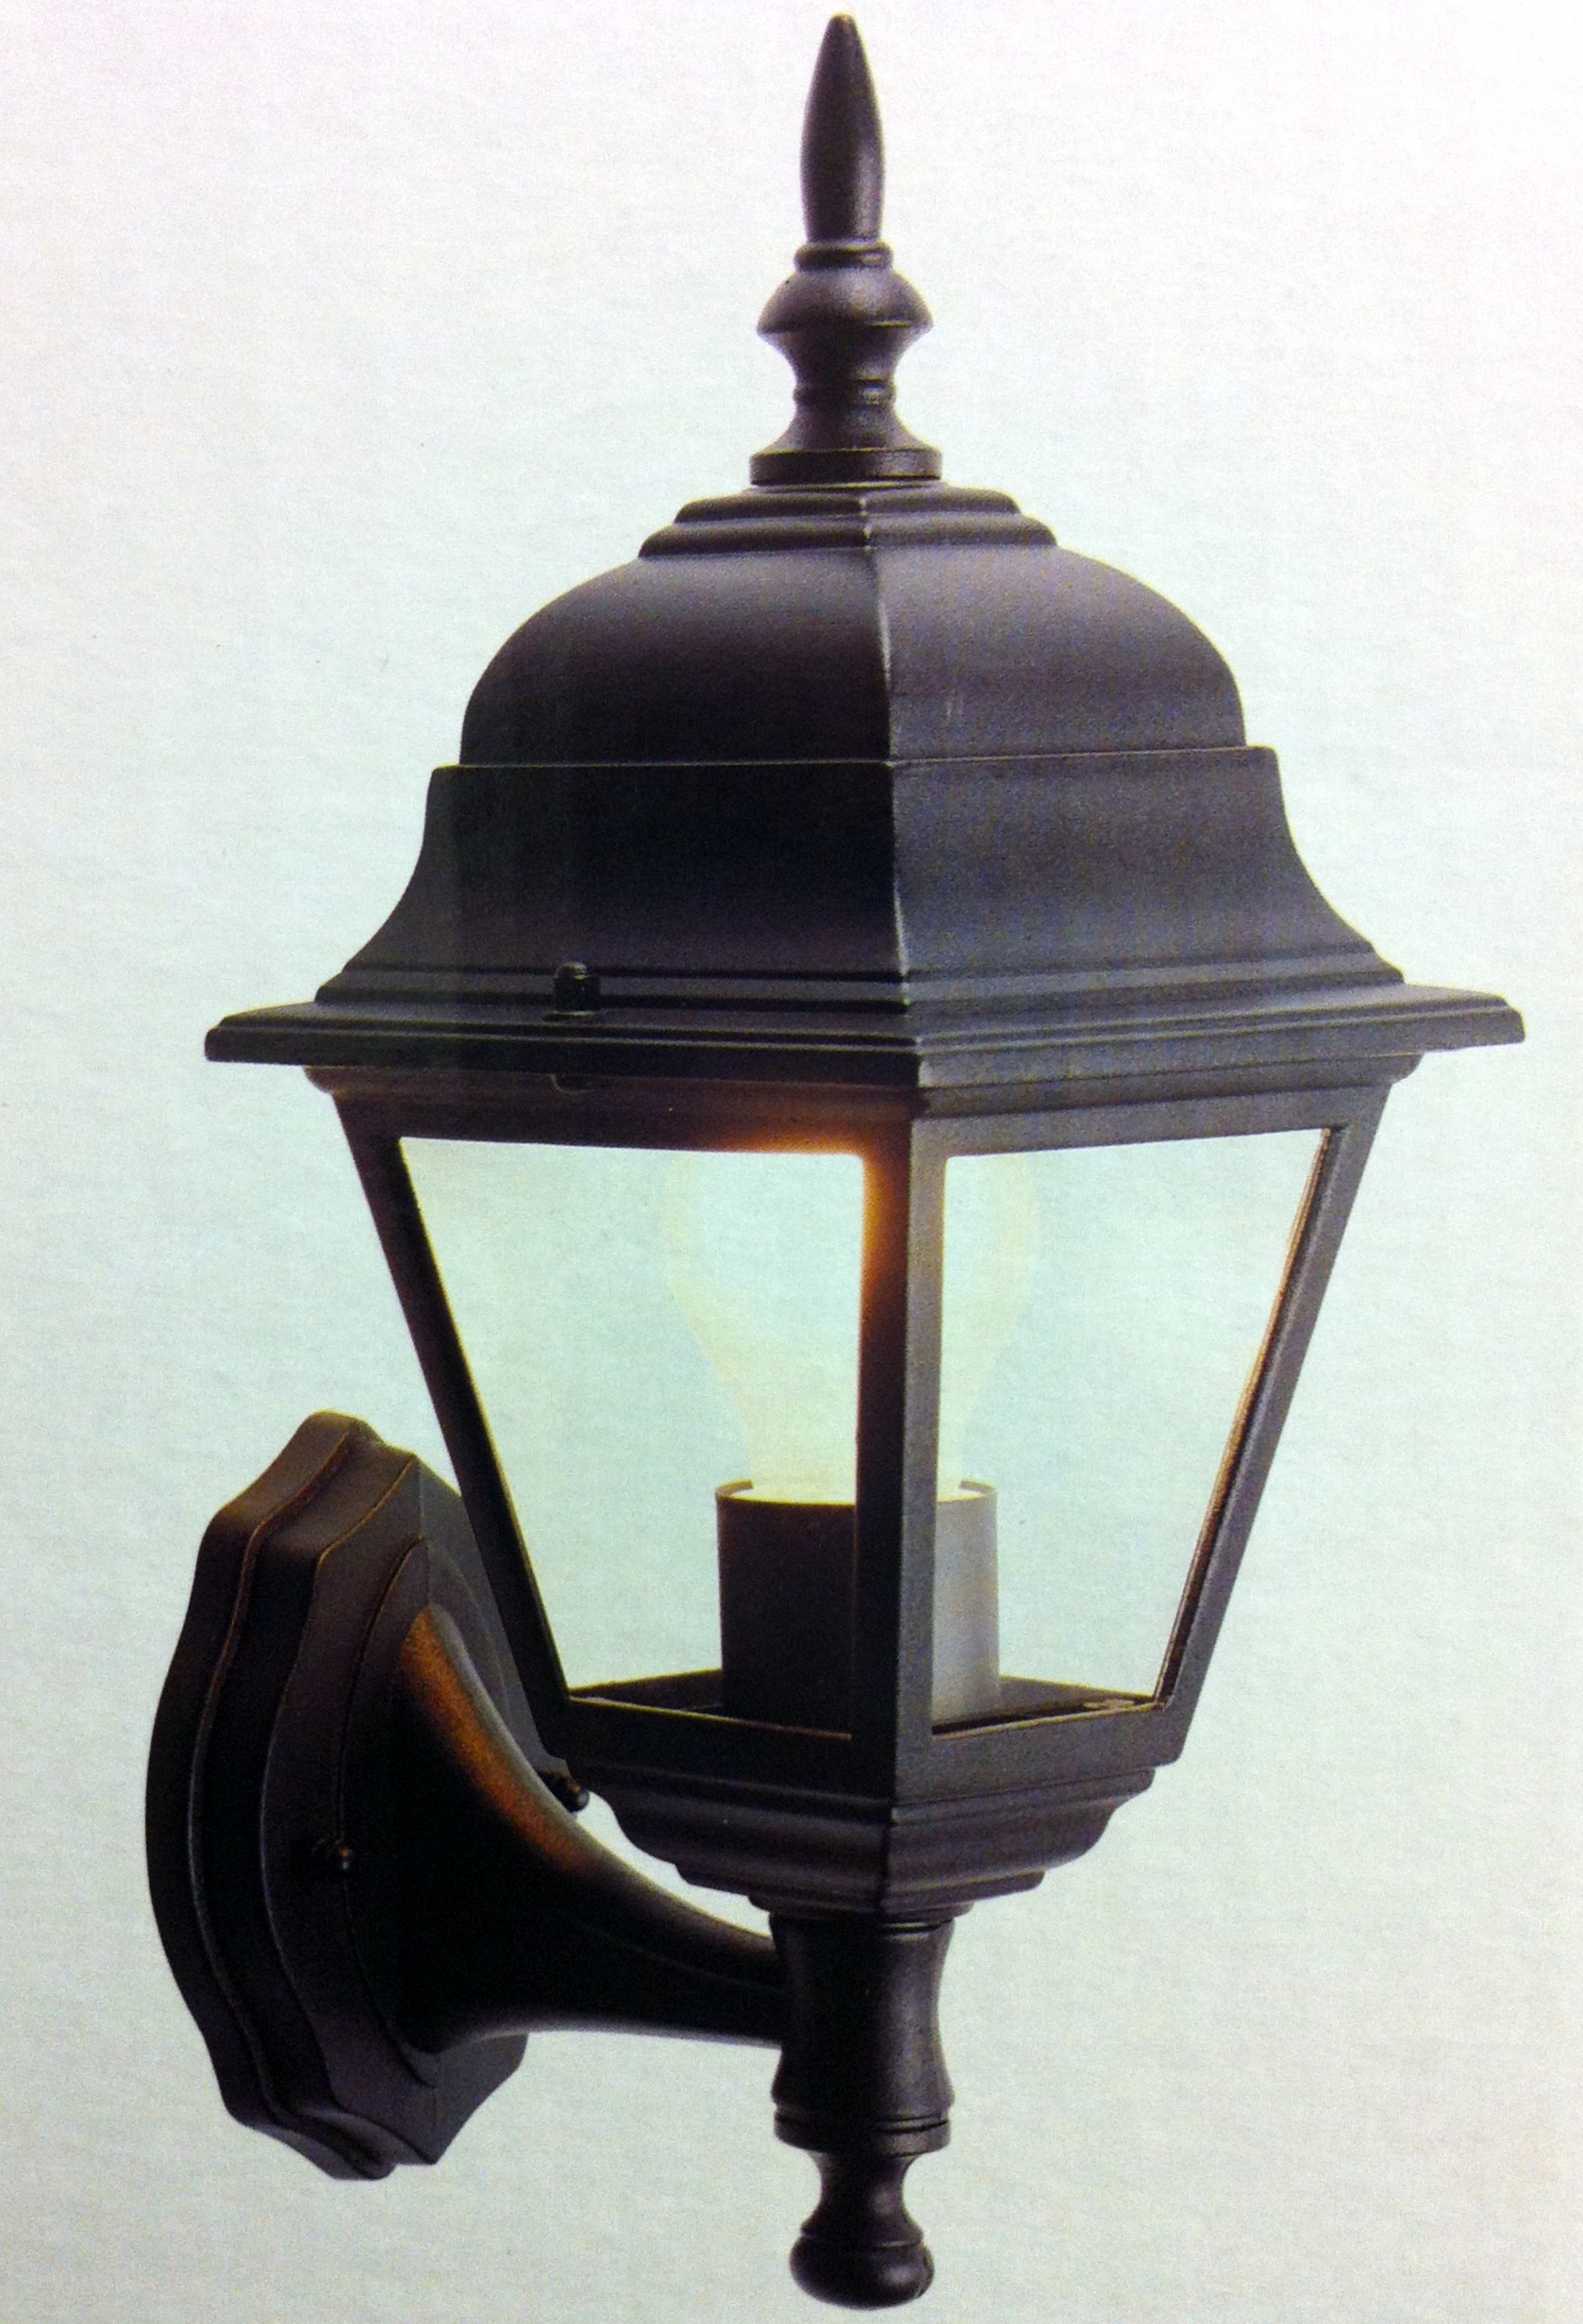 OUTSIDE LIGHT PORCH SECURITY GARDEN WALL LANTERN BLACK OR WHITE EXTERIOR LIGHTS eBay